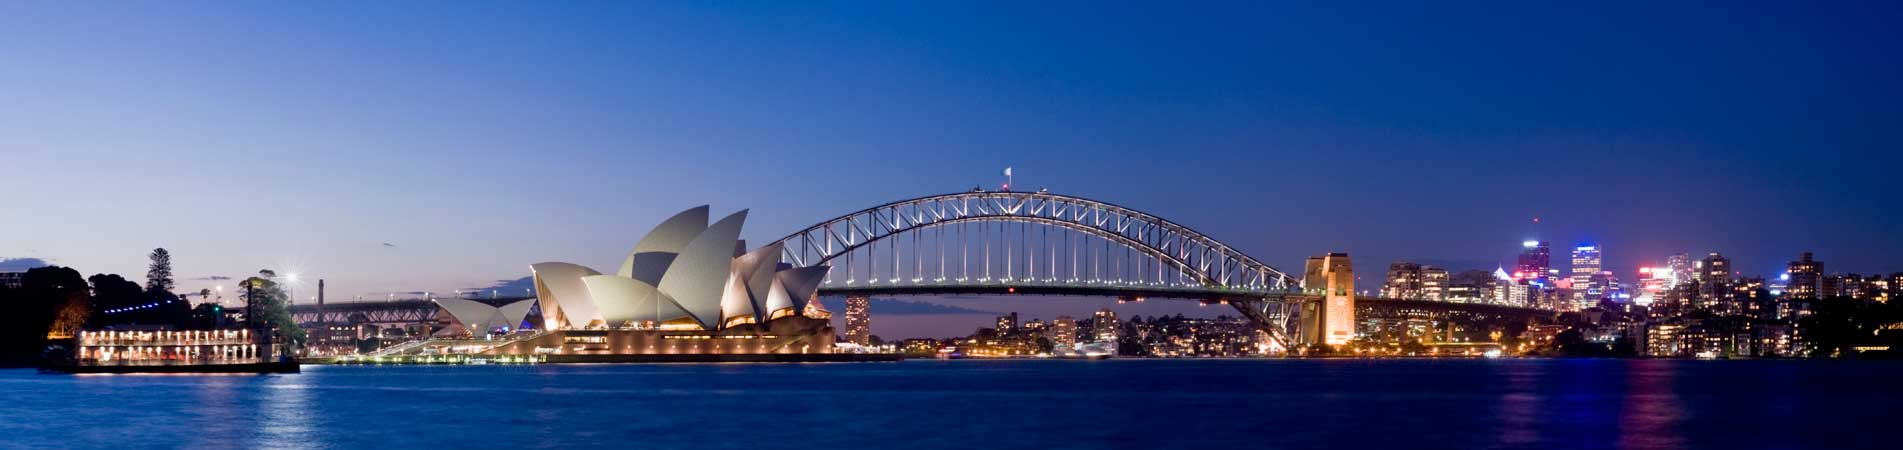 East Coast Buyers Agents - Buyers Agent - Buyers Advocate - Australia